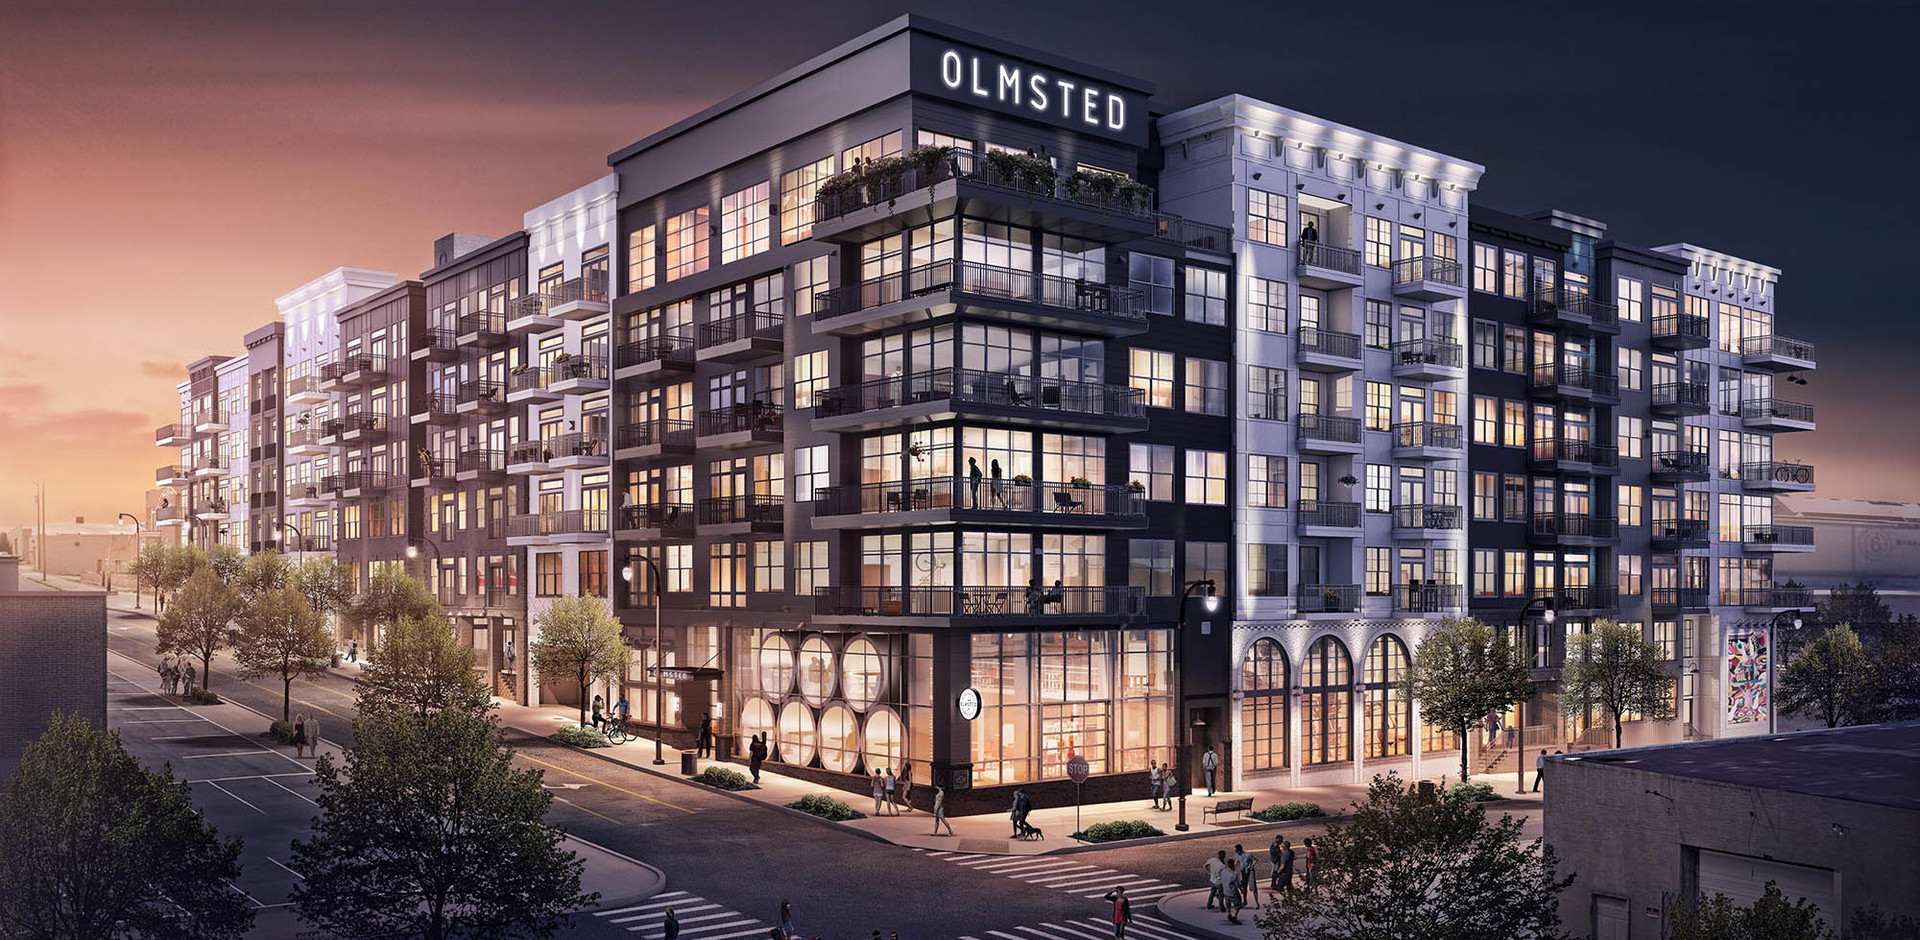 Olmsted-Night-MAIN.jpg